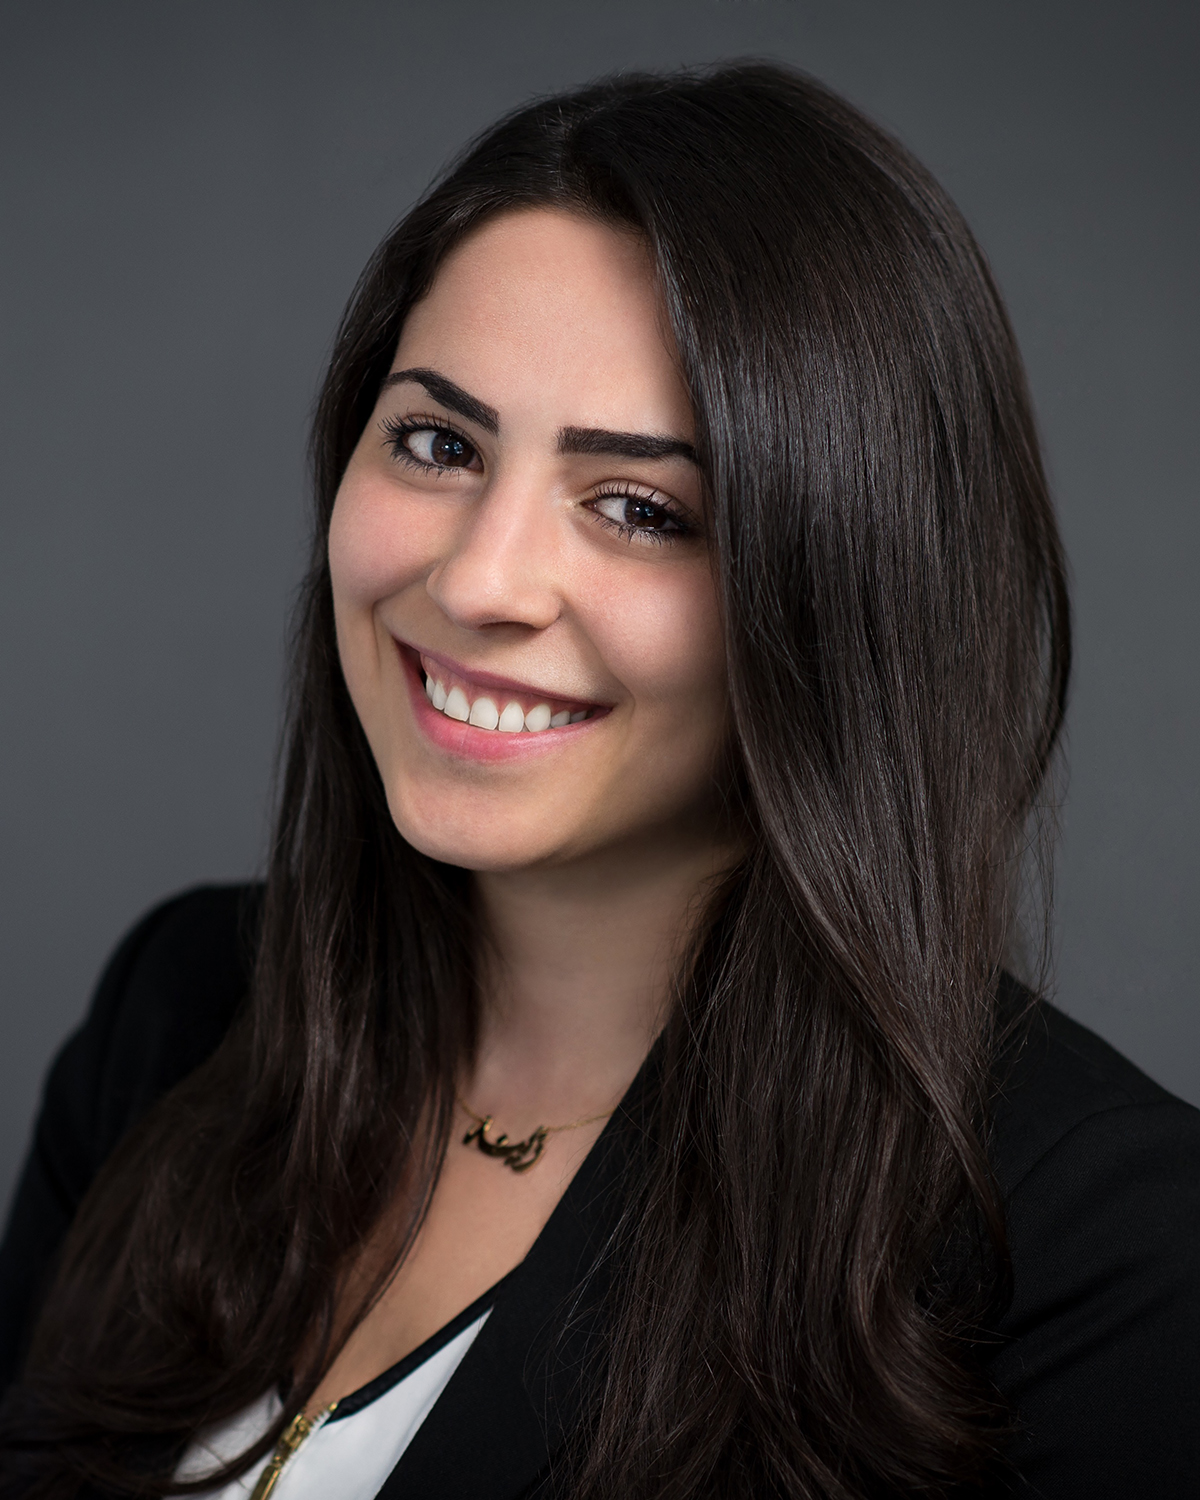 Click here to learn more about Khoury, Zaina S.